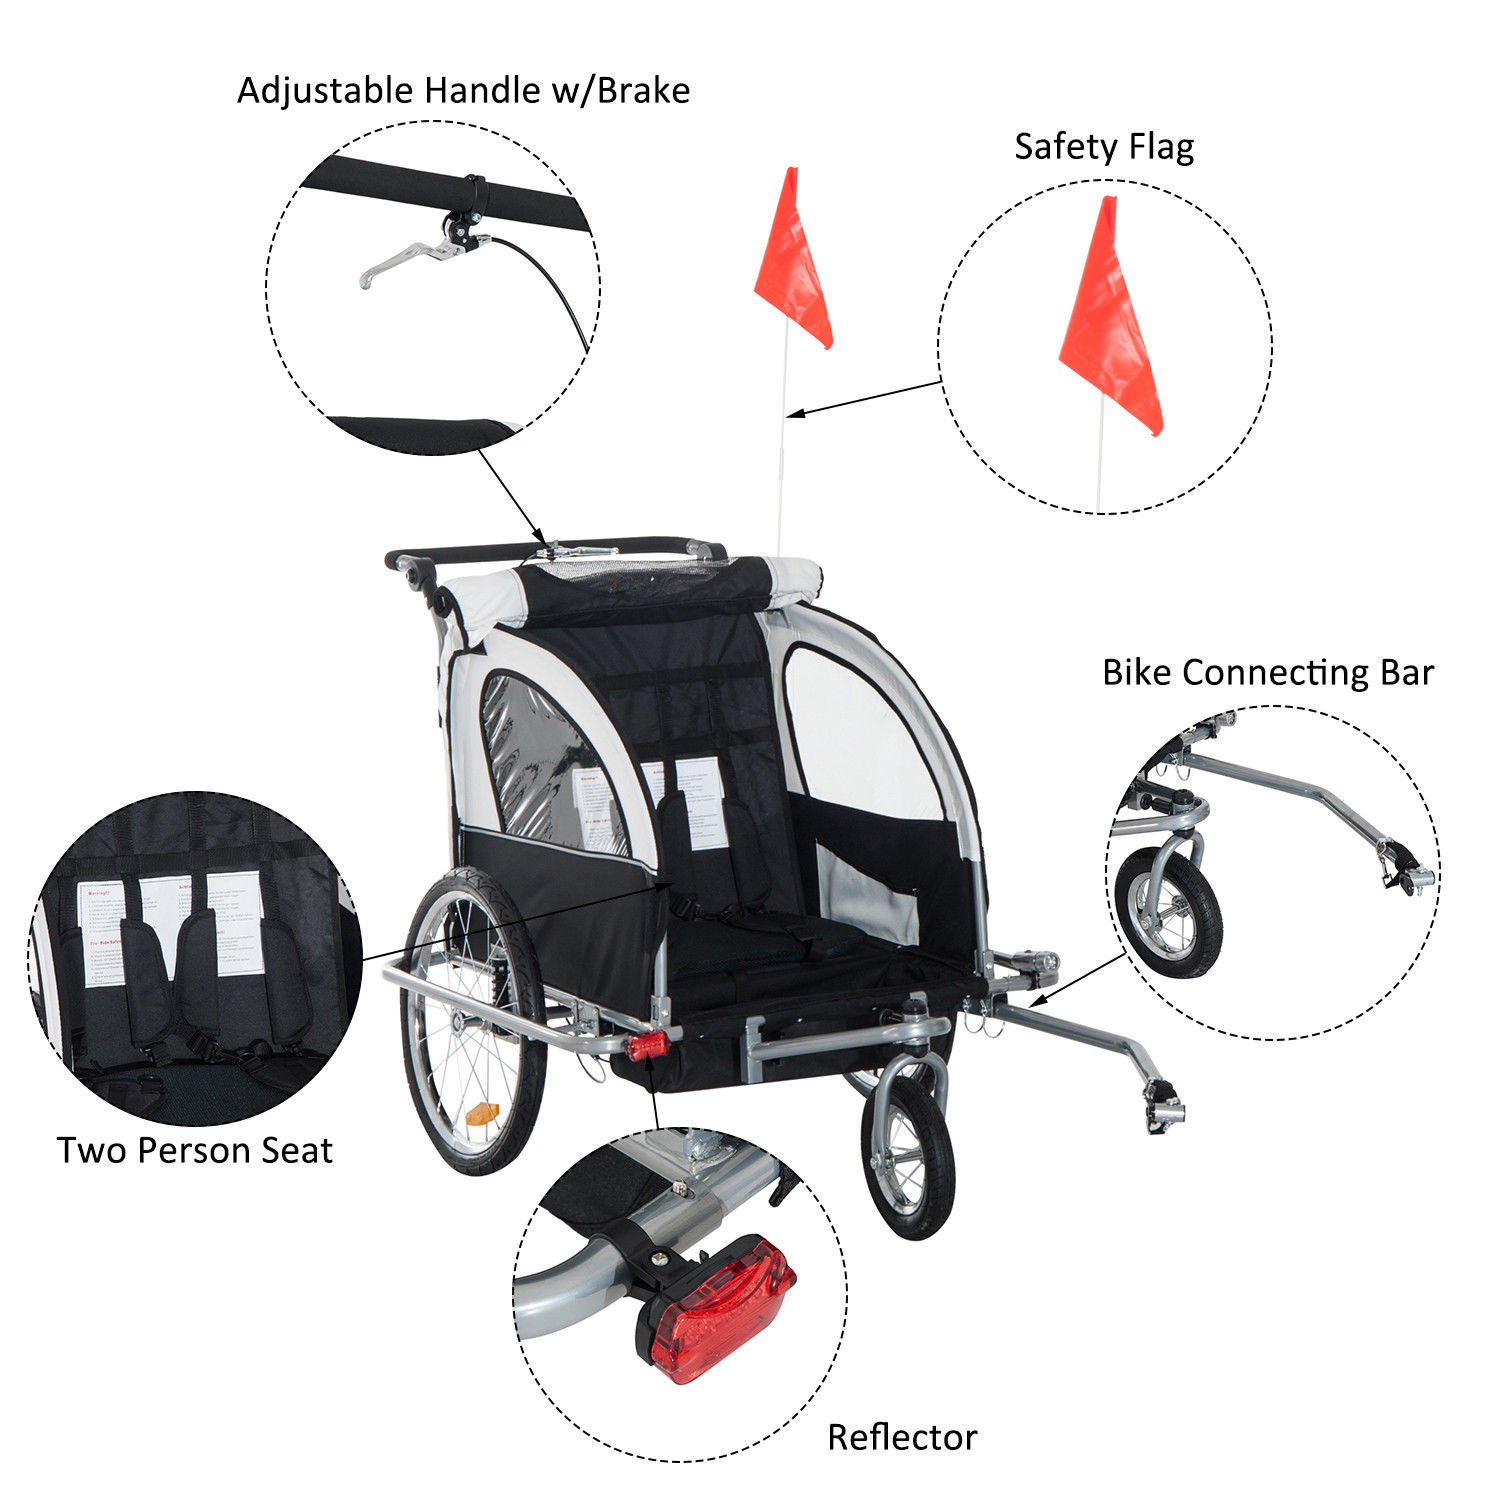 2-Seater-Child-Bike-Trailer-Kids-Carrier-Safety-Harness-Baby-Stroller-Jogger thumbnail 16